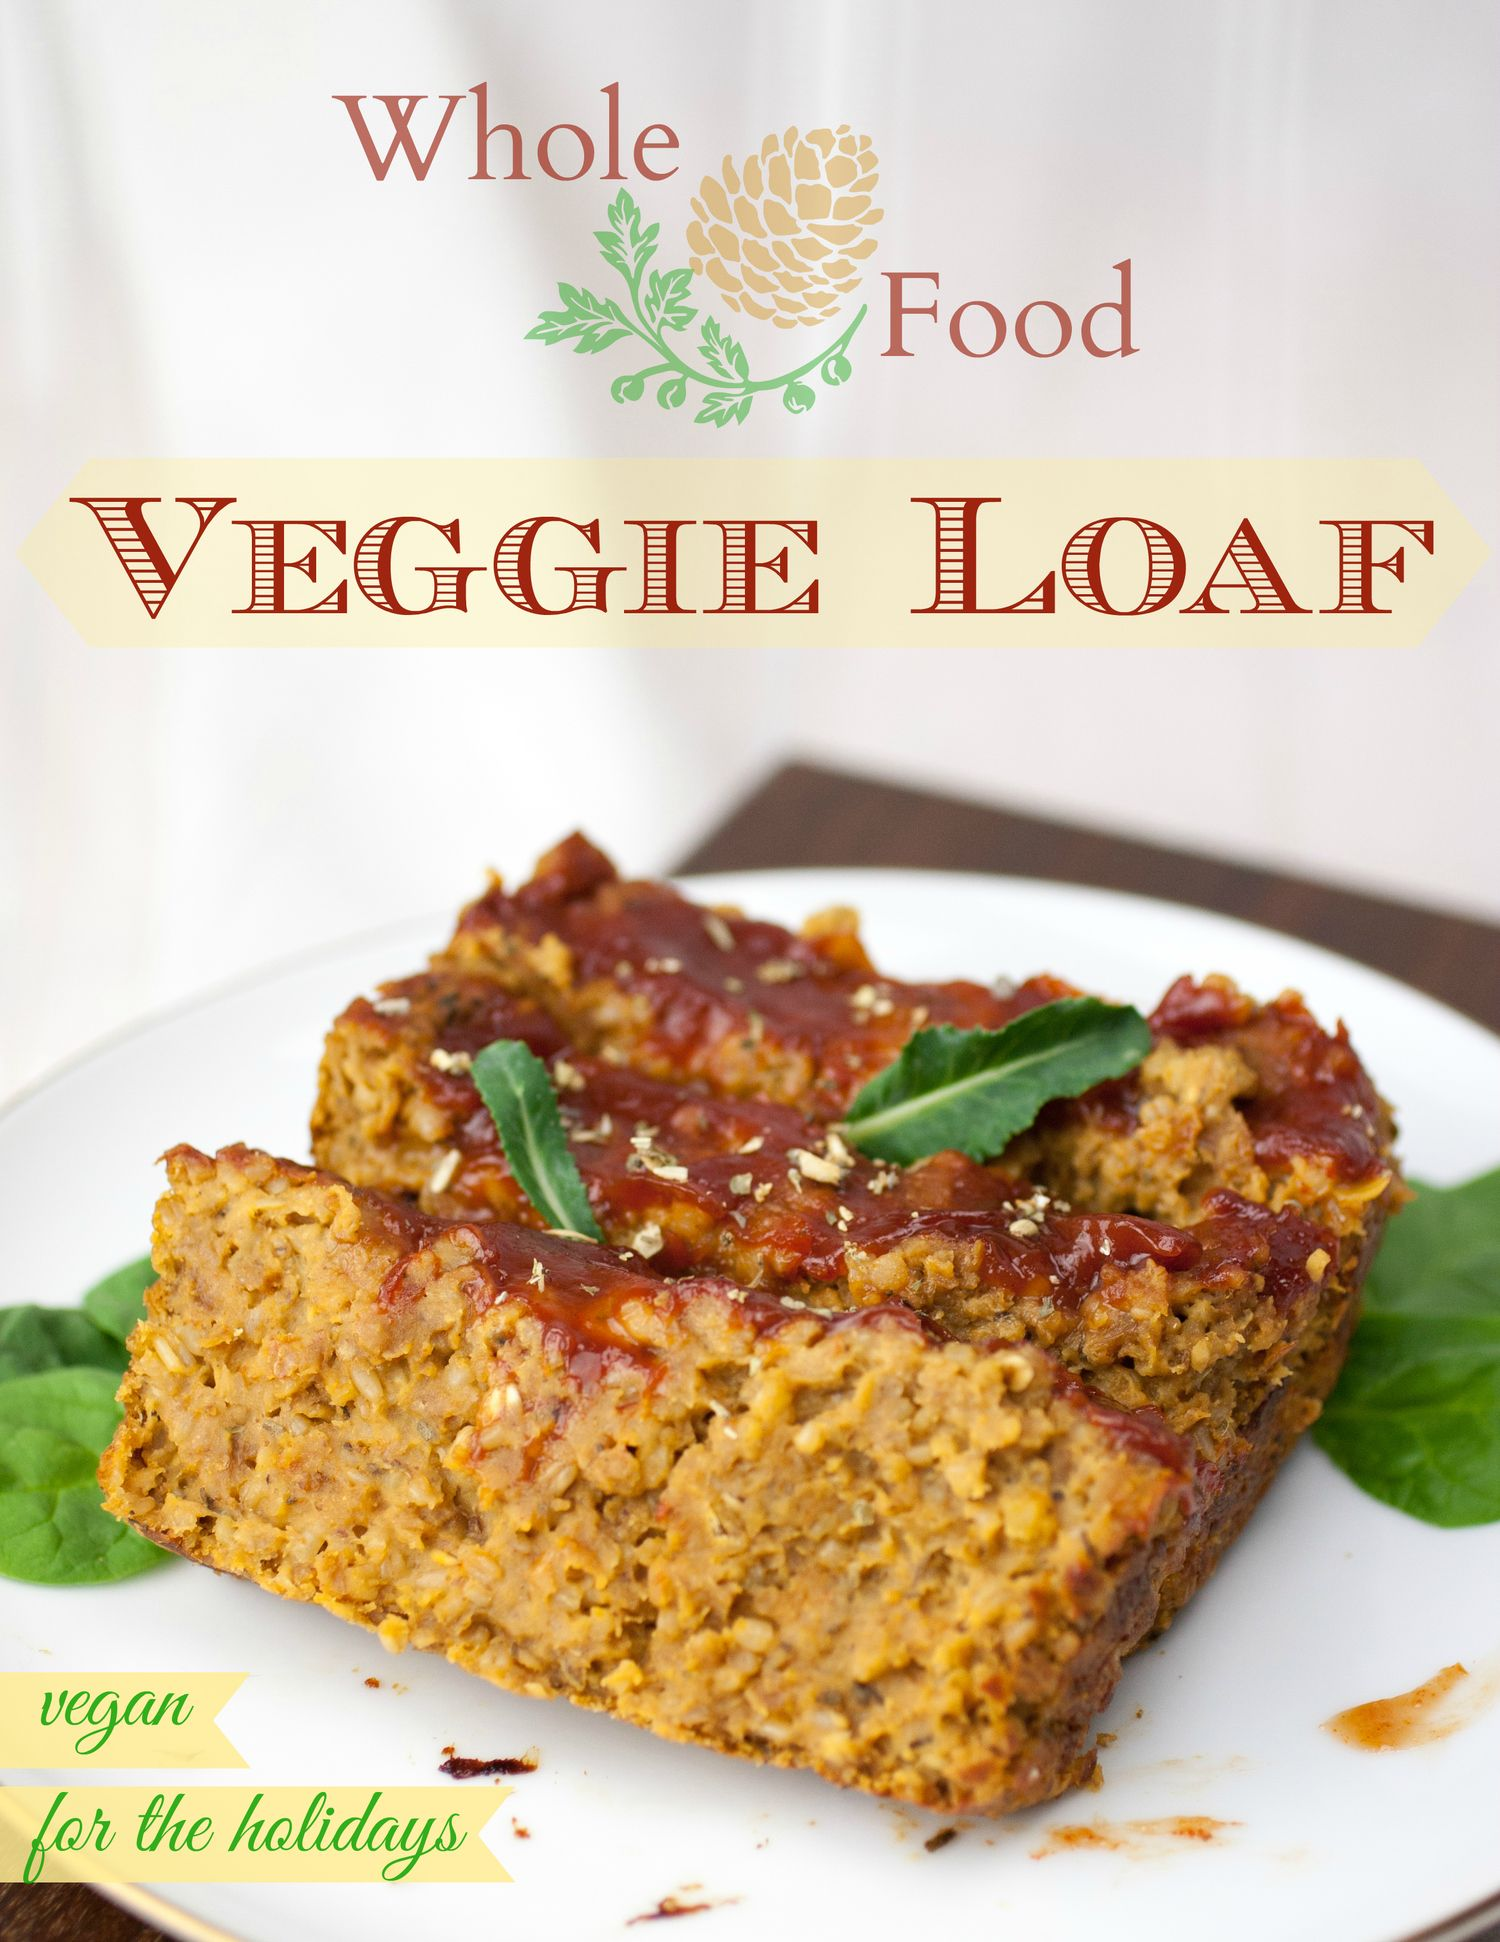 Vegan meatloaf... might be good with mushroom gravy?